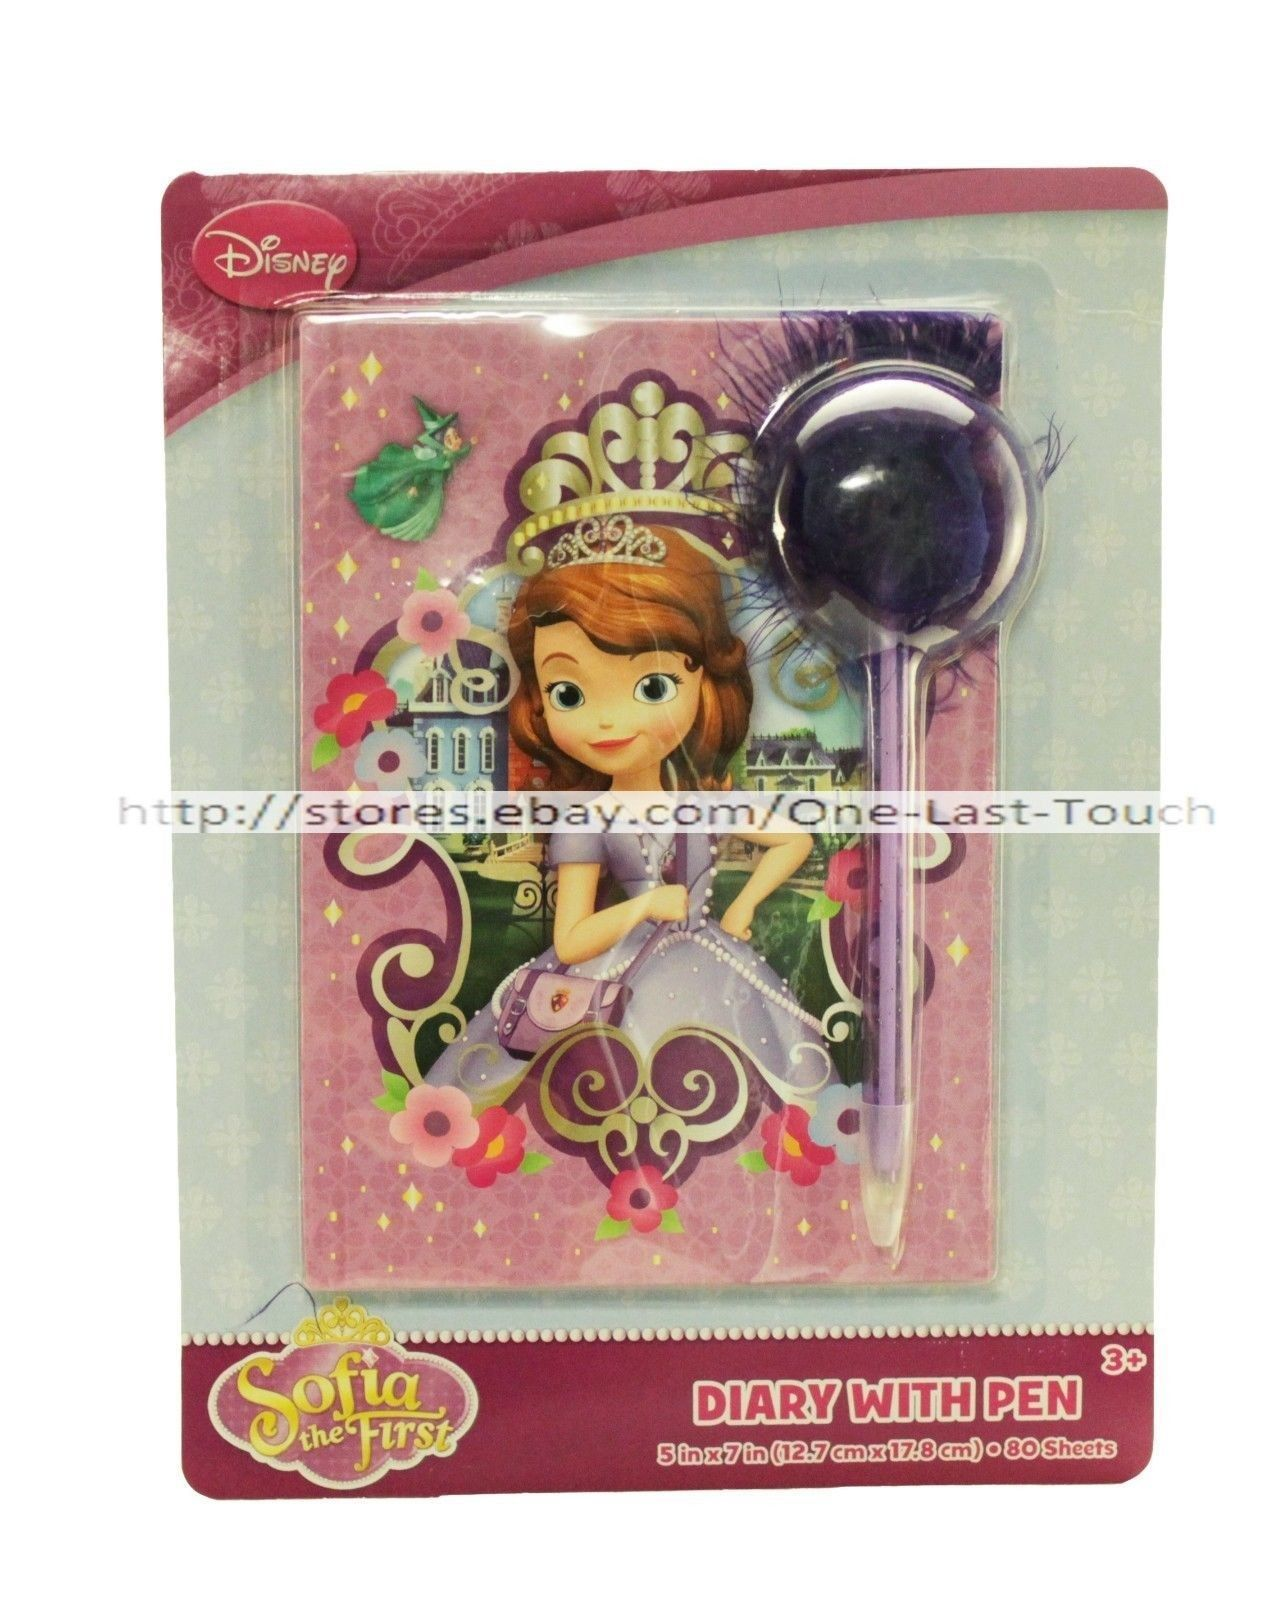 SOFIA THE FIRST 80 Lined Sheets DIARY w/POM POM PEN Purple Feathers DISNEY New! - $5.41